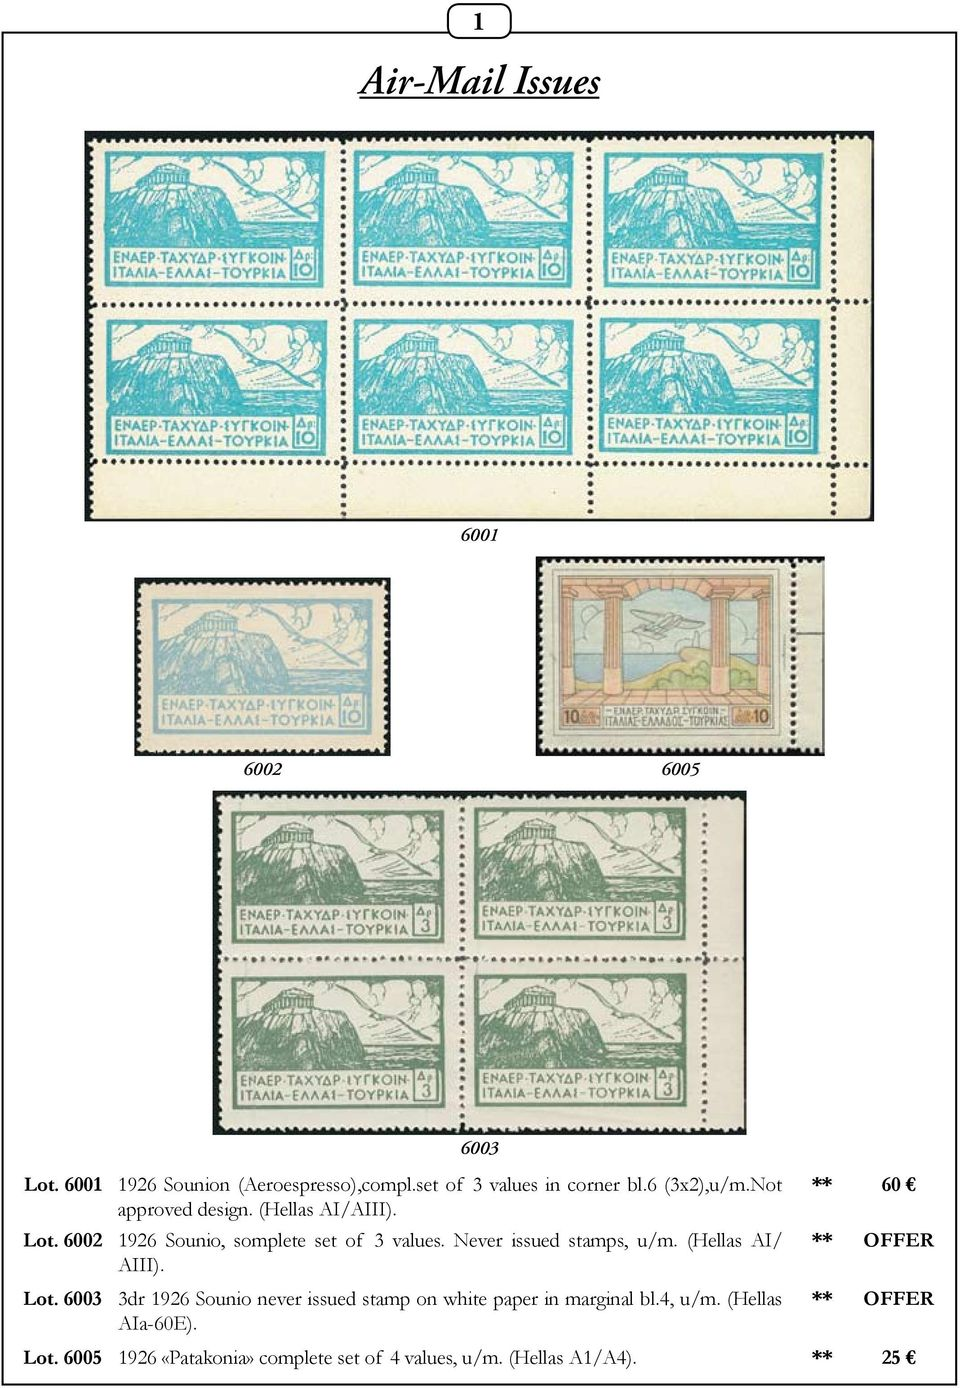 Never issued stamps, u/m. (Hellas AI/ ** OFFER AIII). Lot.